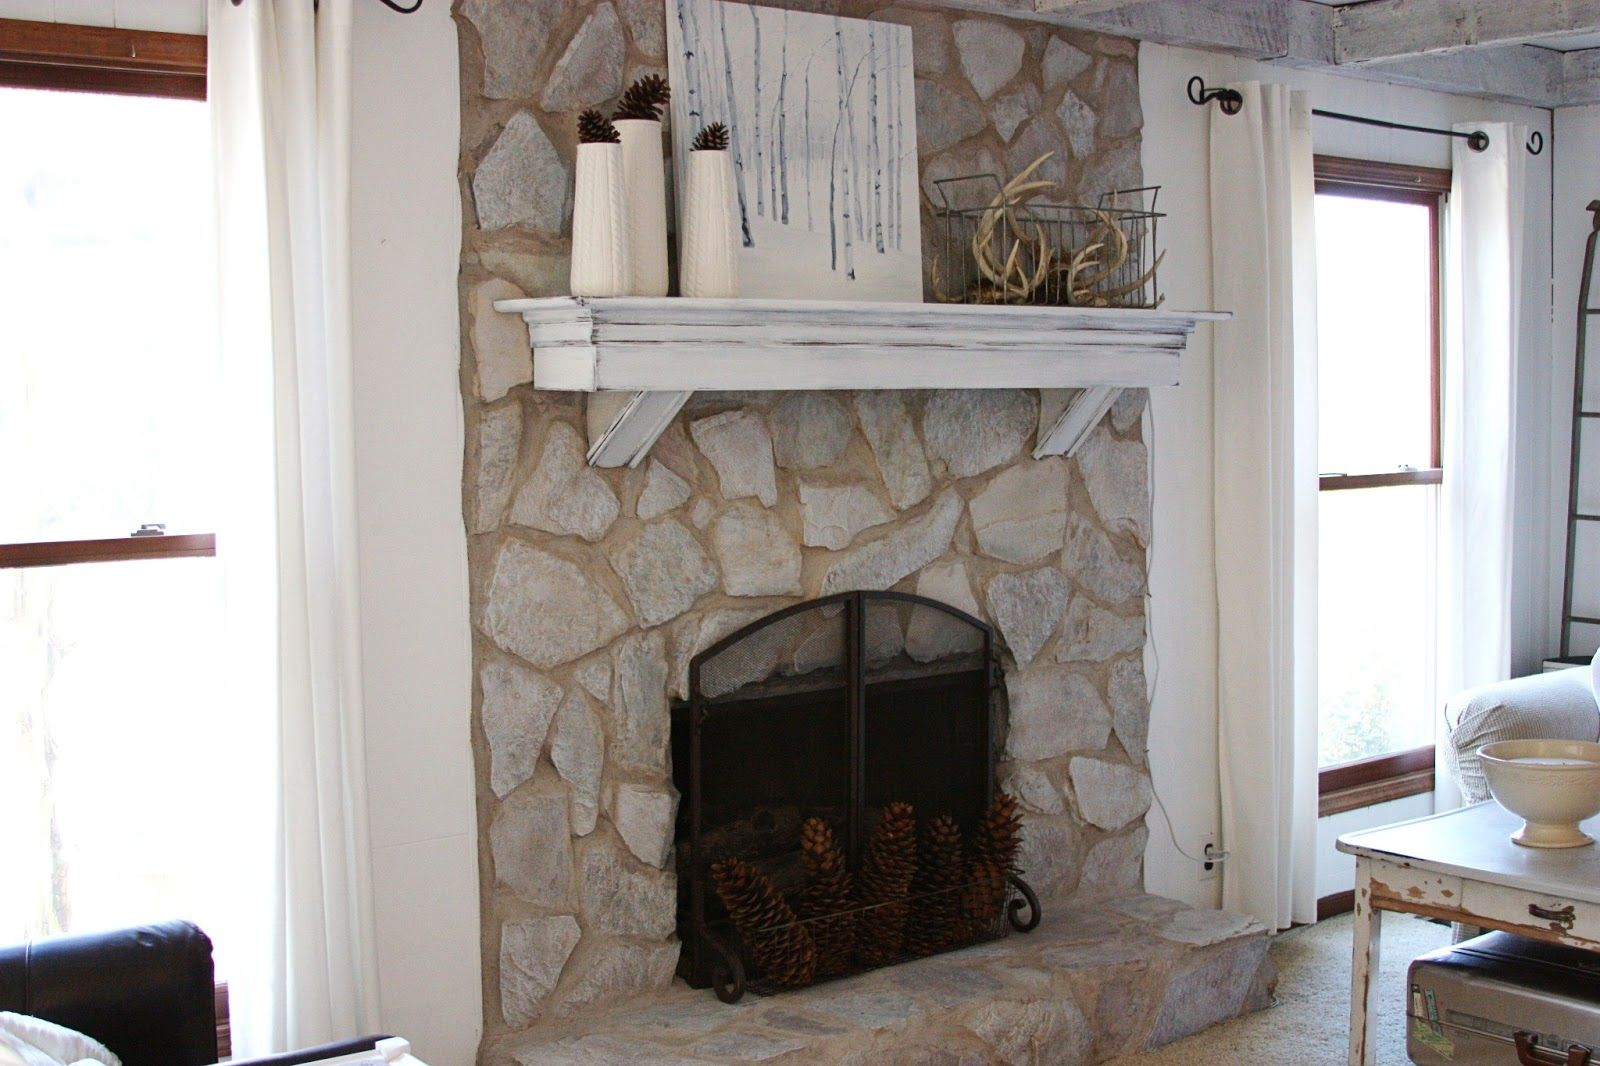 erin u0027s art and gardens painted stone fireplace before and after